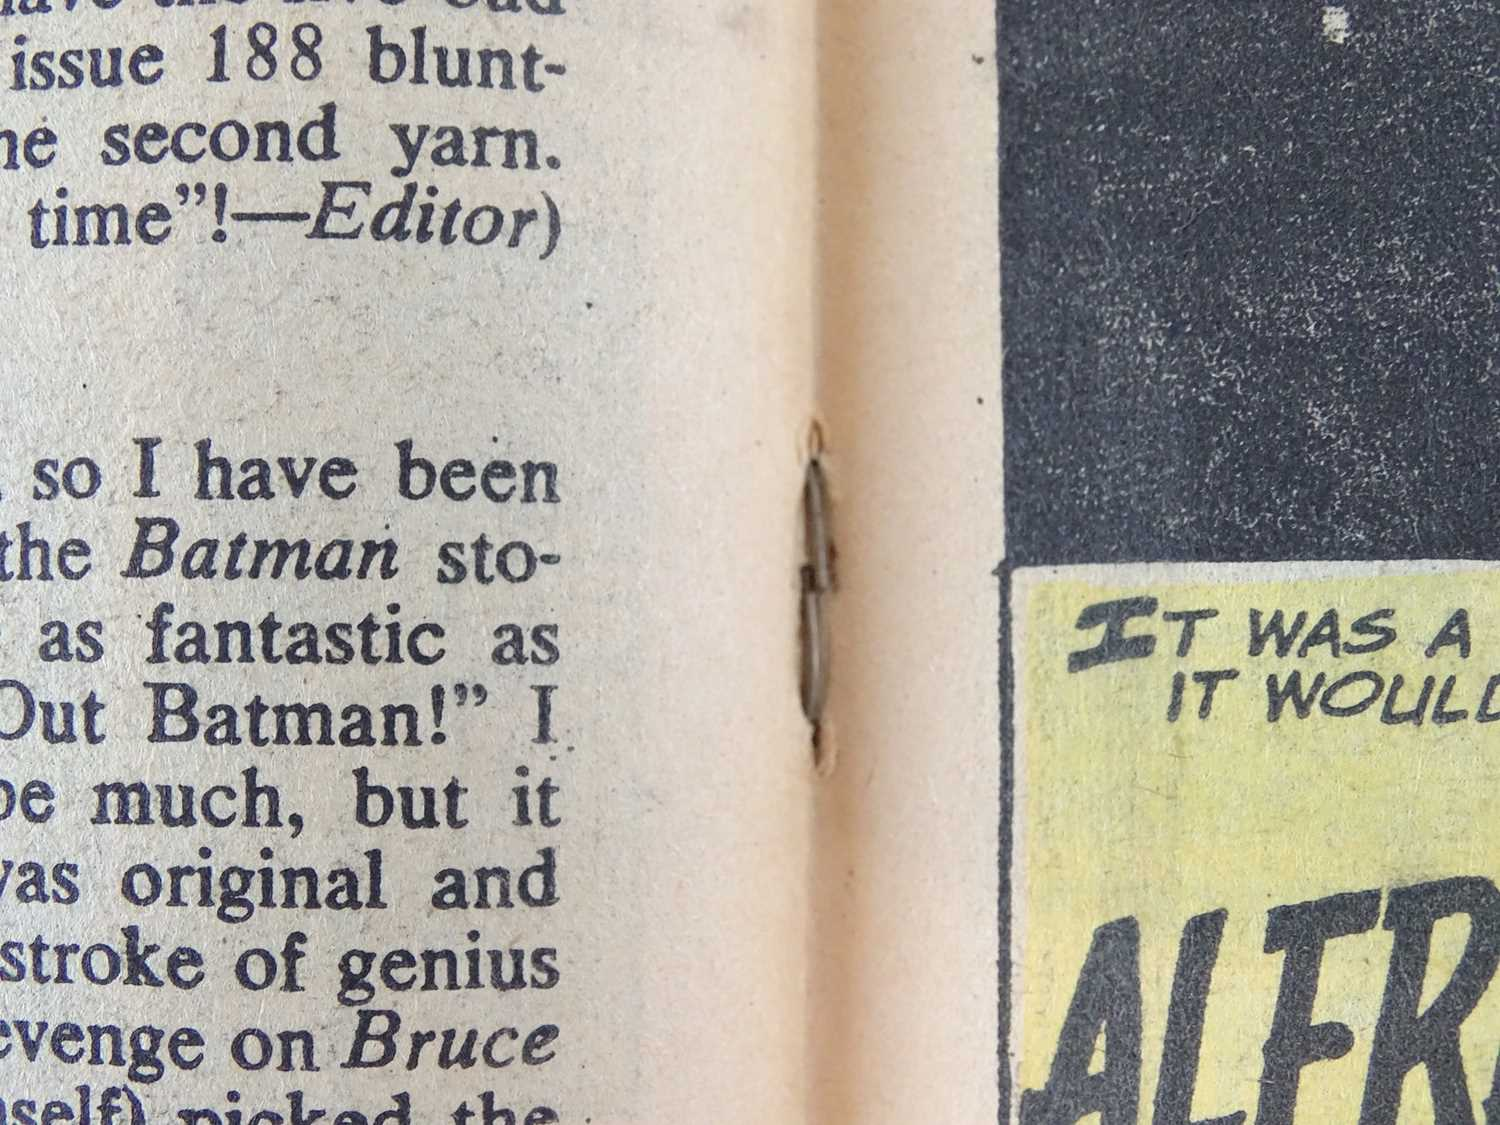 BATMAN #191 - (1967 - DC - UK Cover Price) - Joker and Penguin appearances in this BAT-AUCTION issue - Image 6 of 9